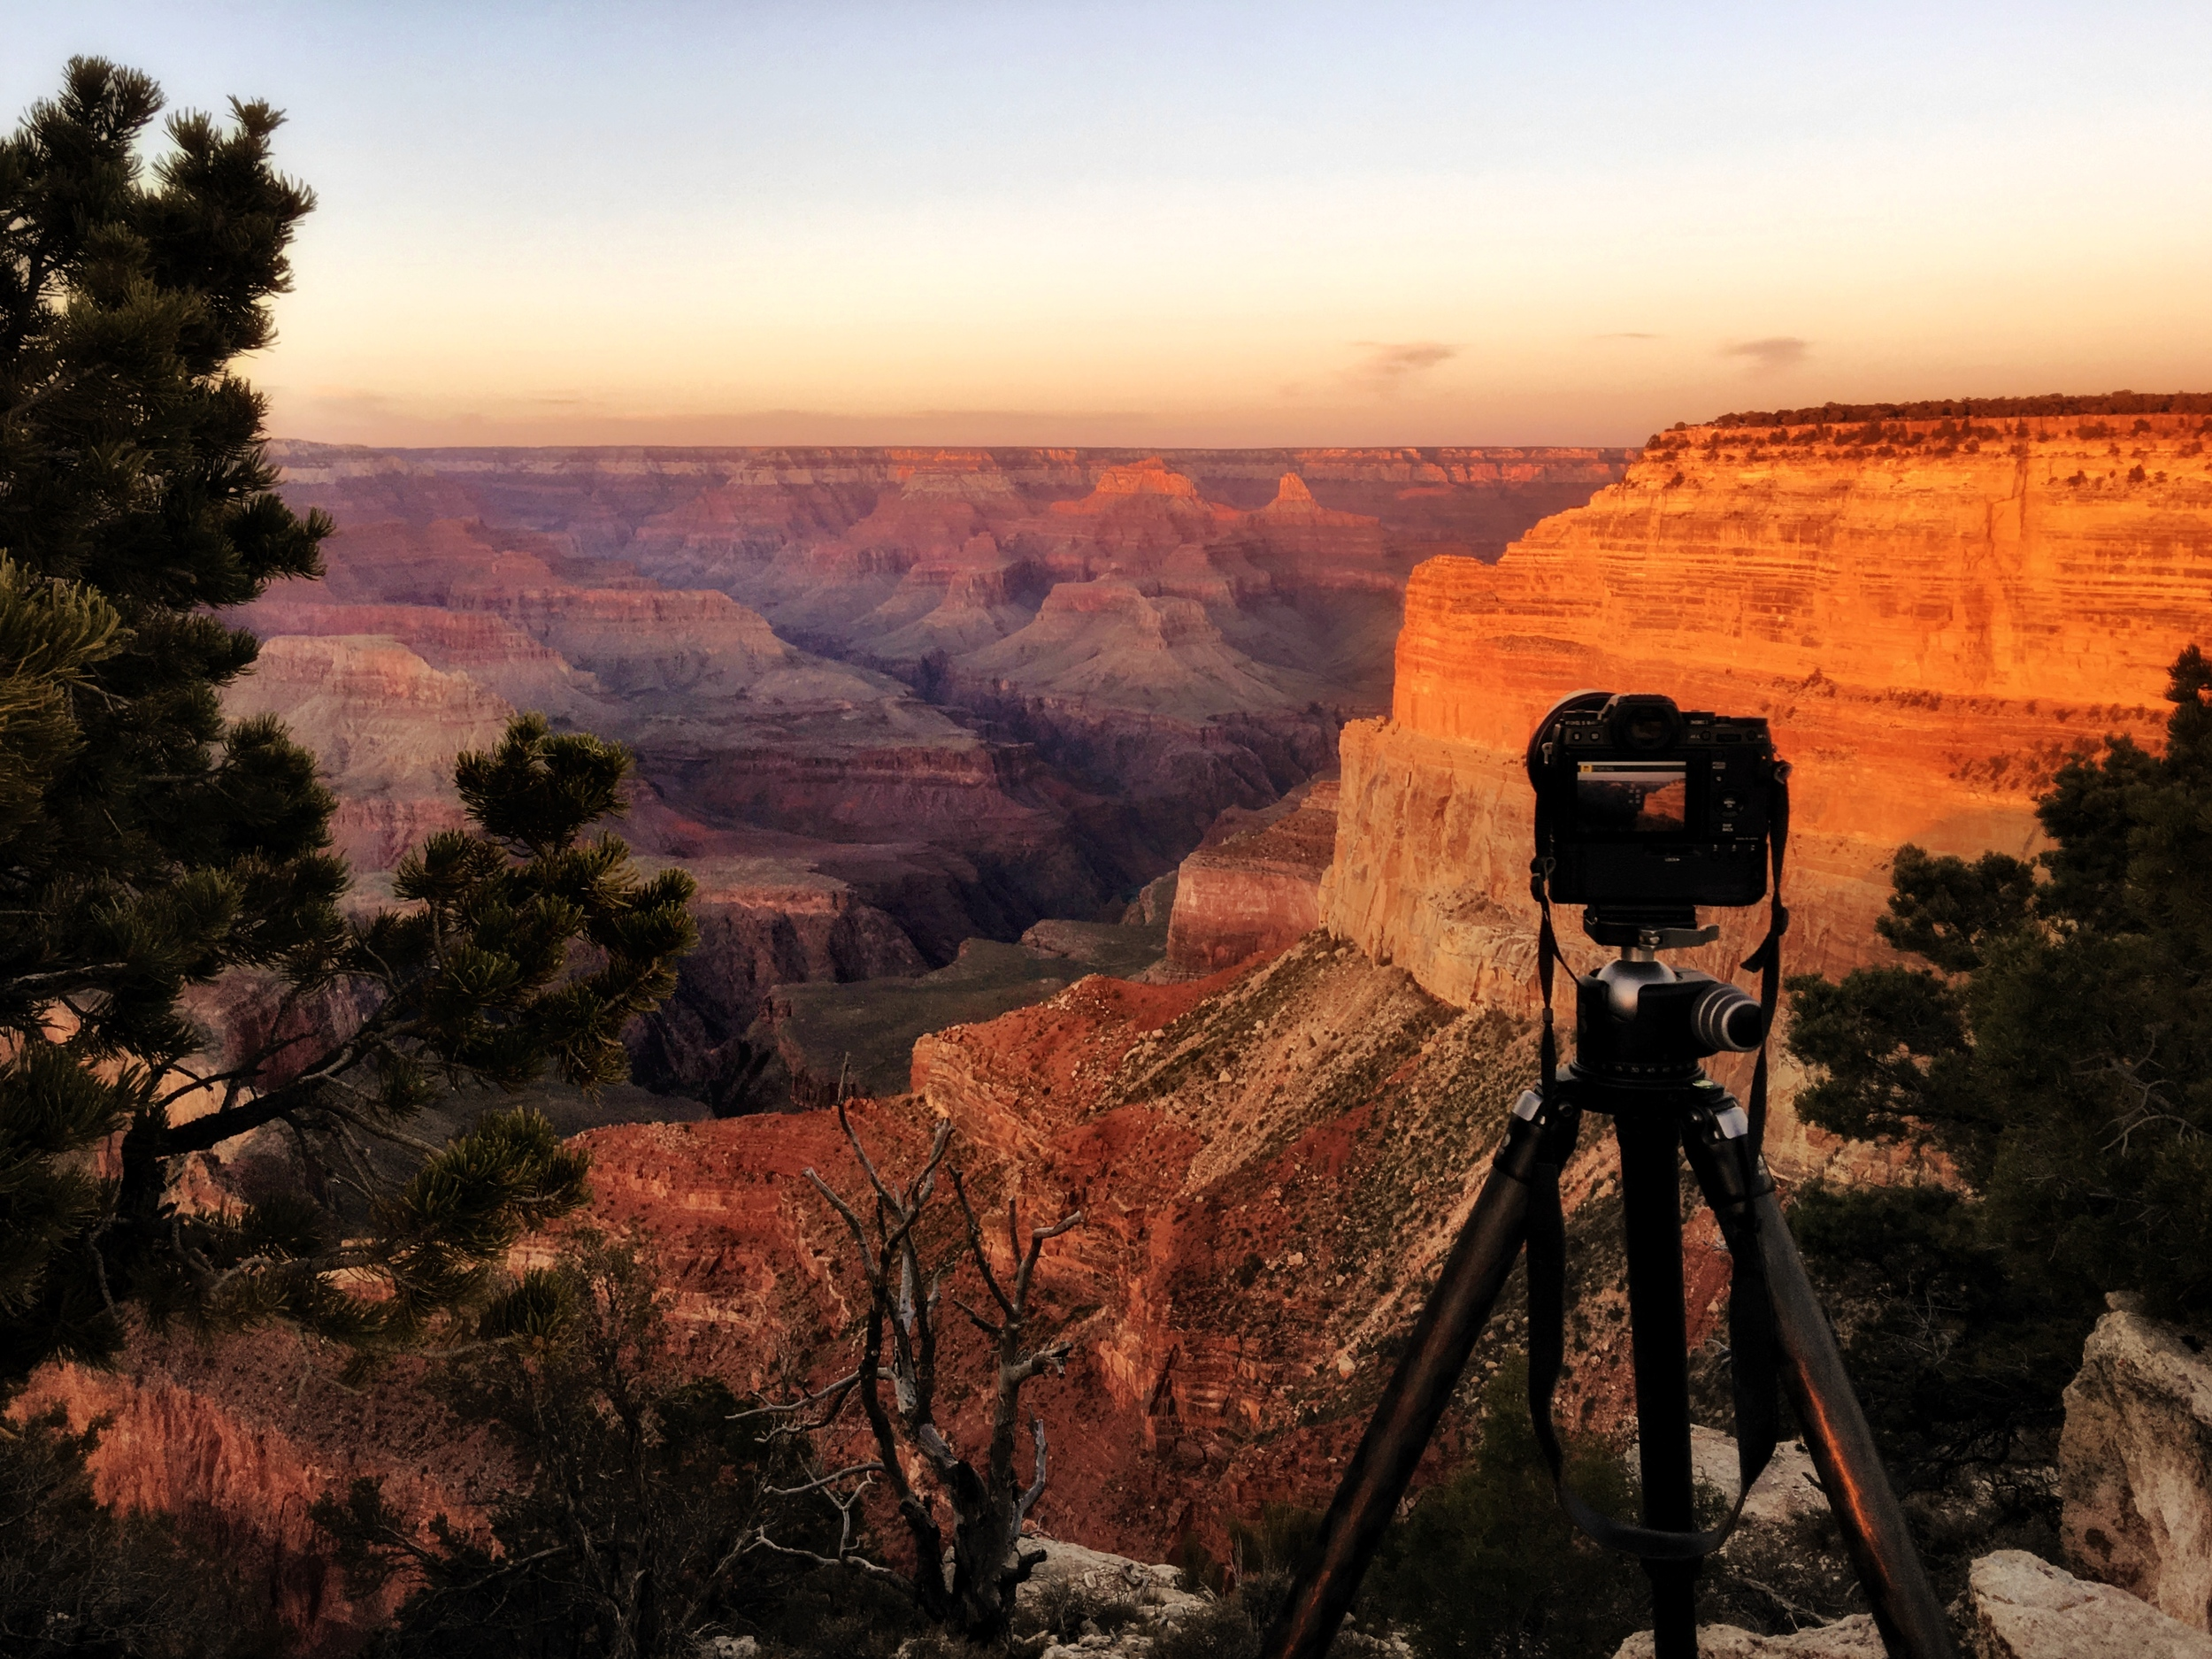 All set up at Mojave Point to capture the Grand Canyon sunset.